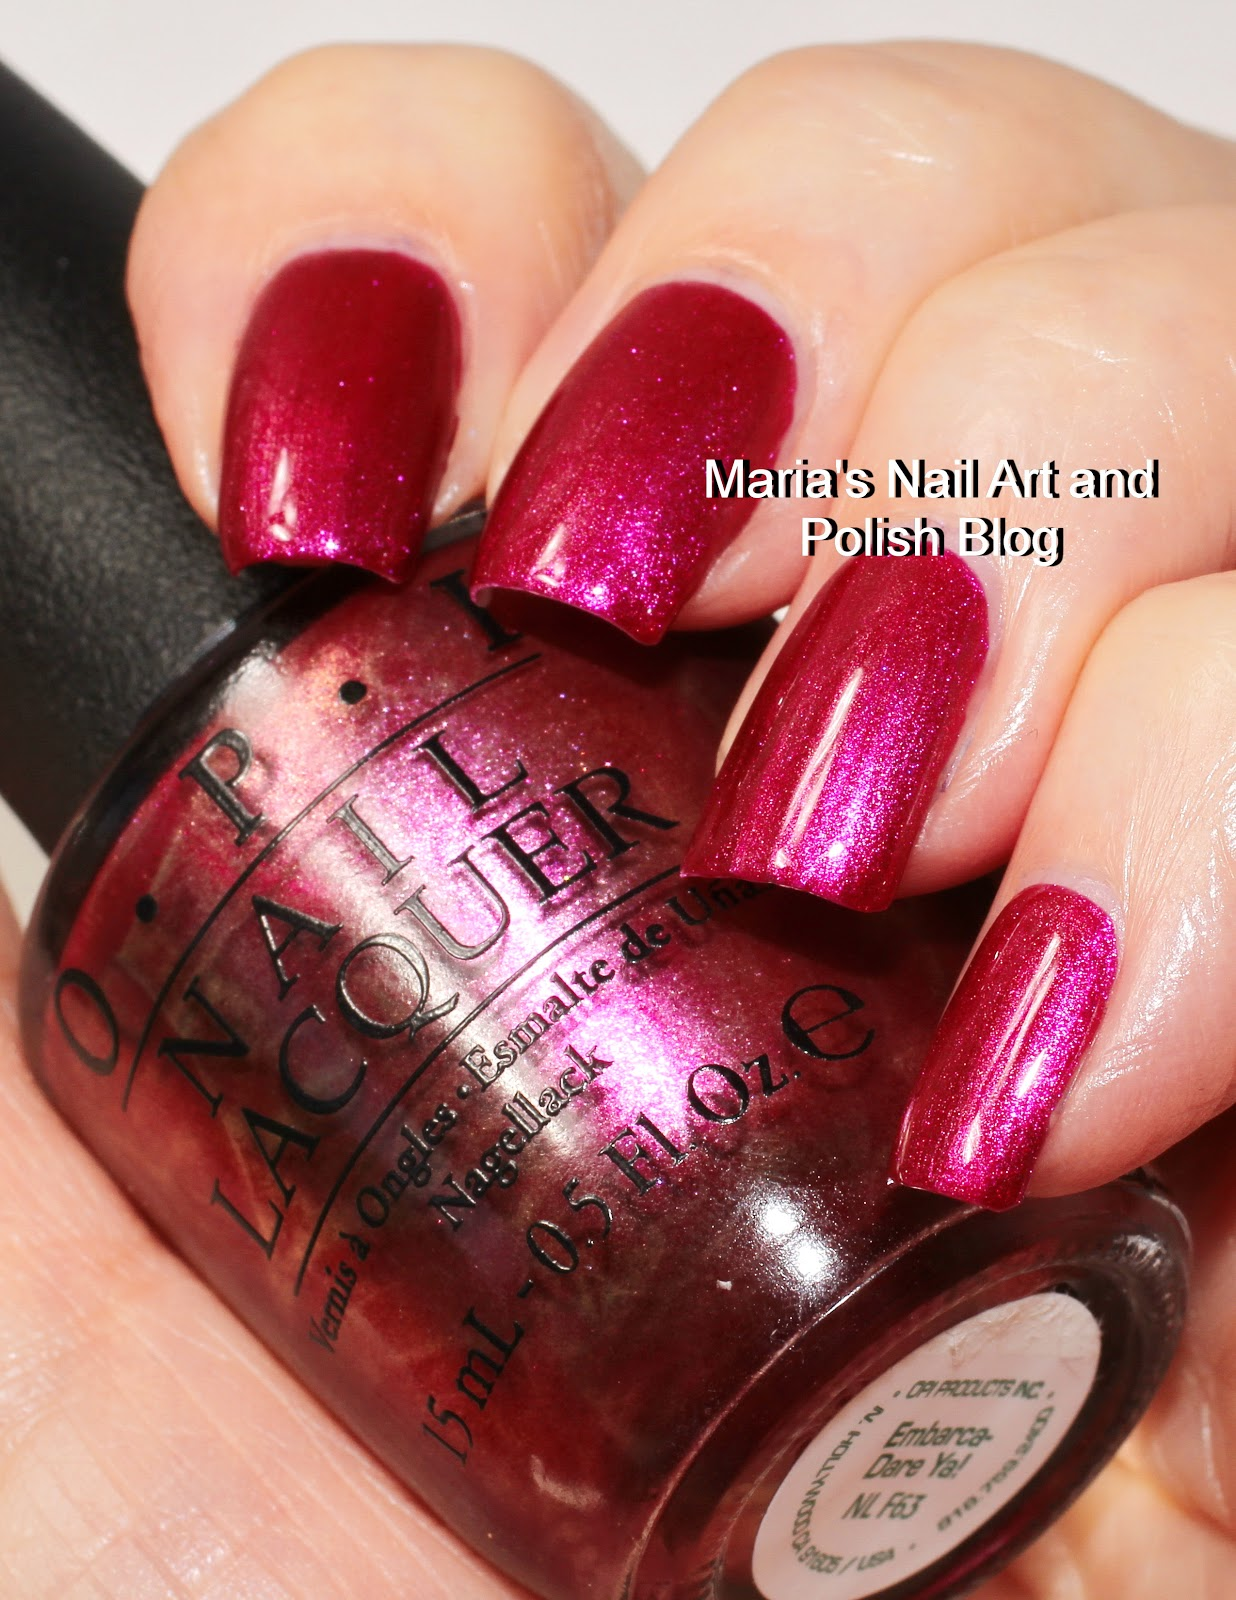 Marias Nail Art And Polish Blog Opi Embarca Dare Ya From Me To Q